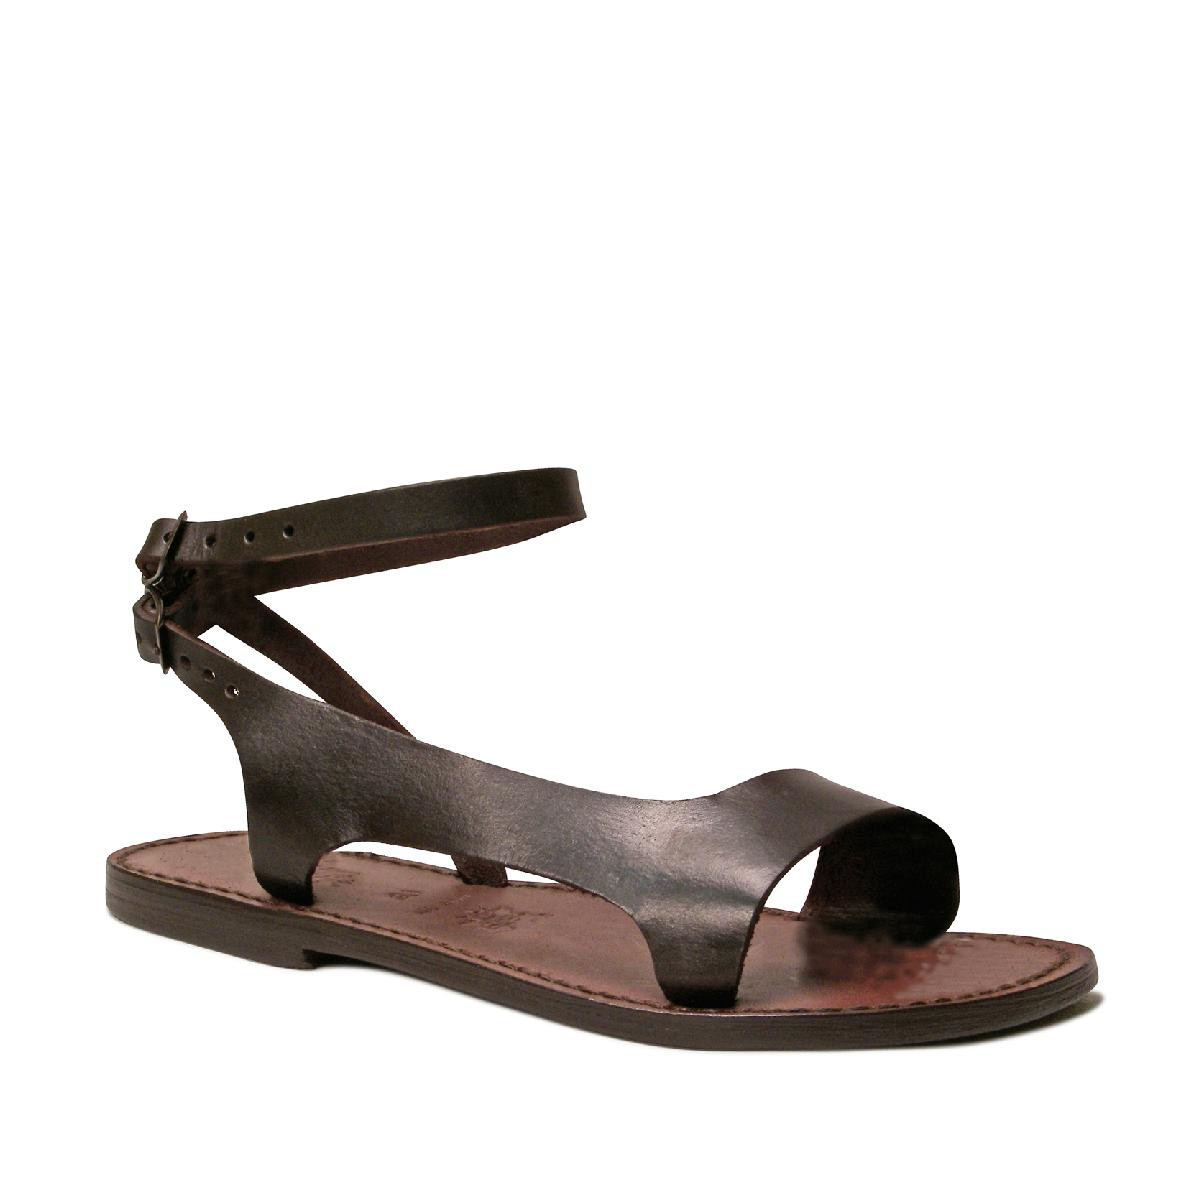 Model Womenu0026#39;s Brown Leather Sandals Strappy Slingback Flats By